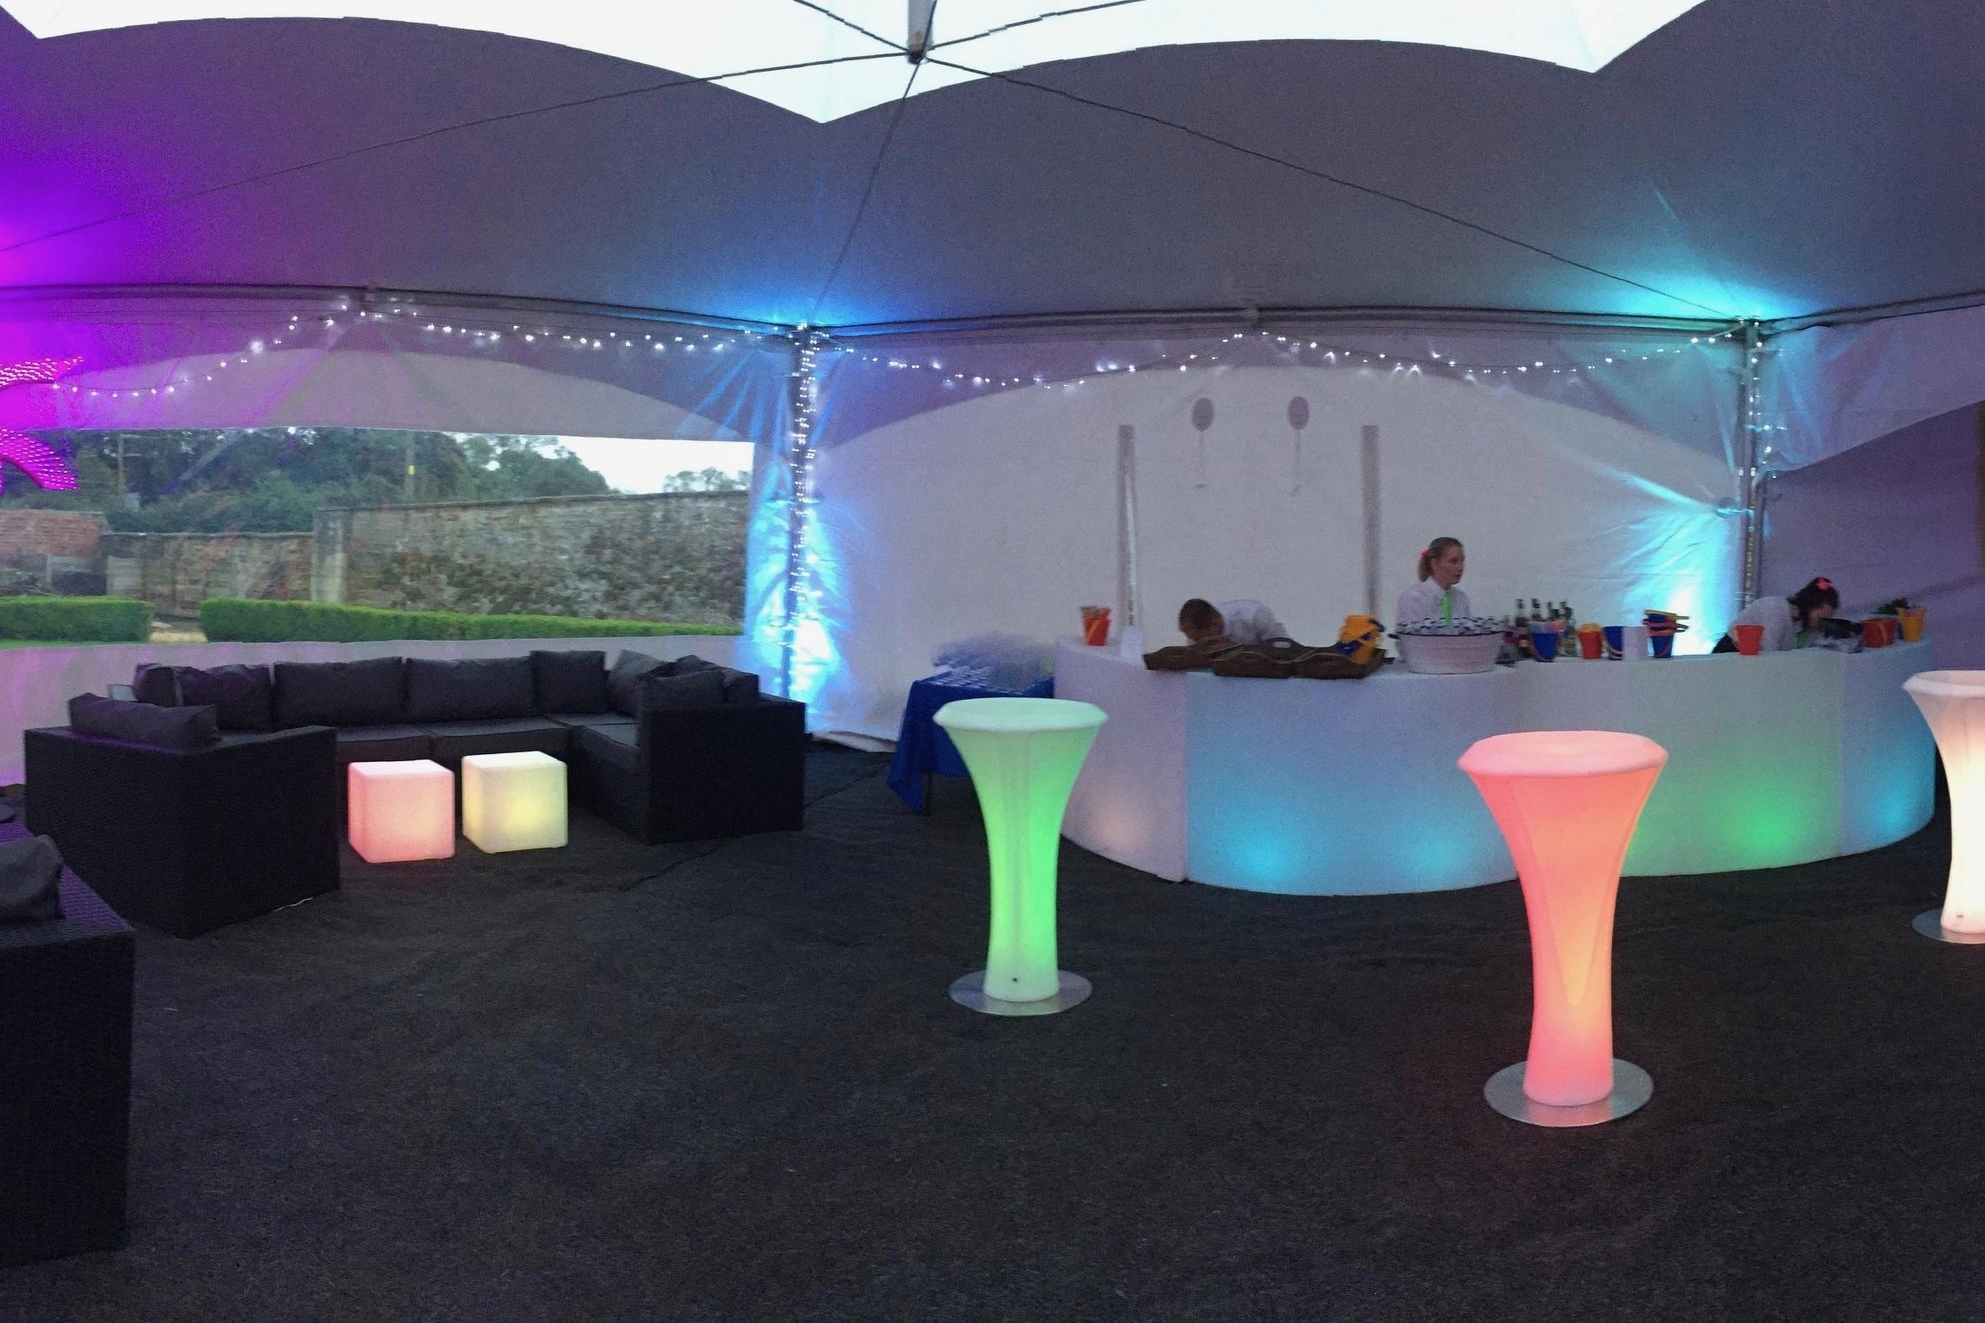 Bring clubland to you event with a selection of LED furniture. Impressive and functional